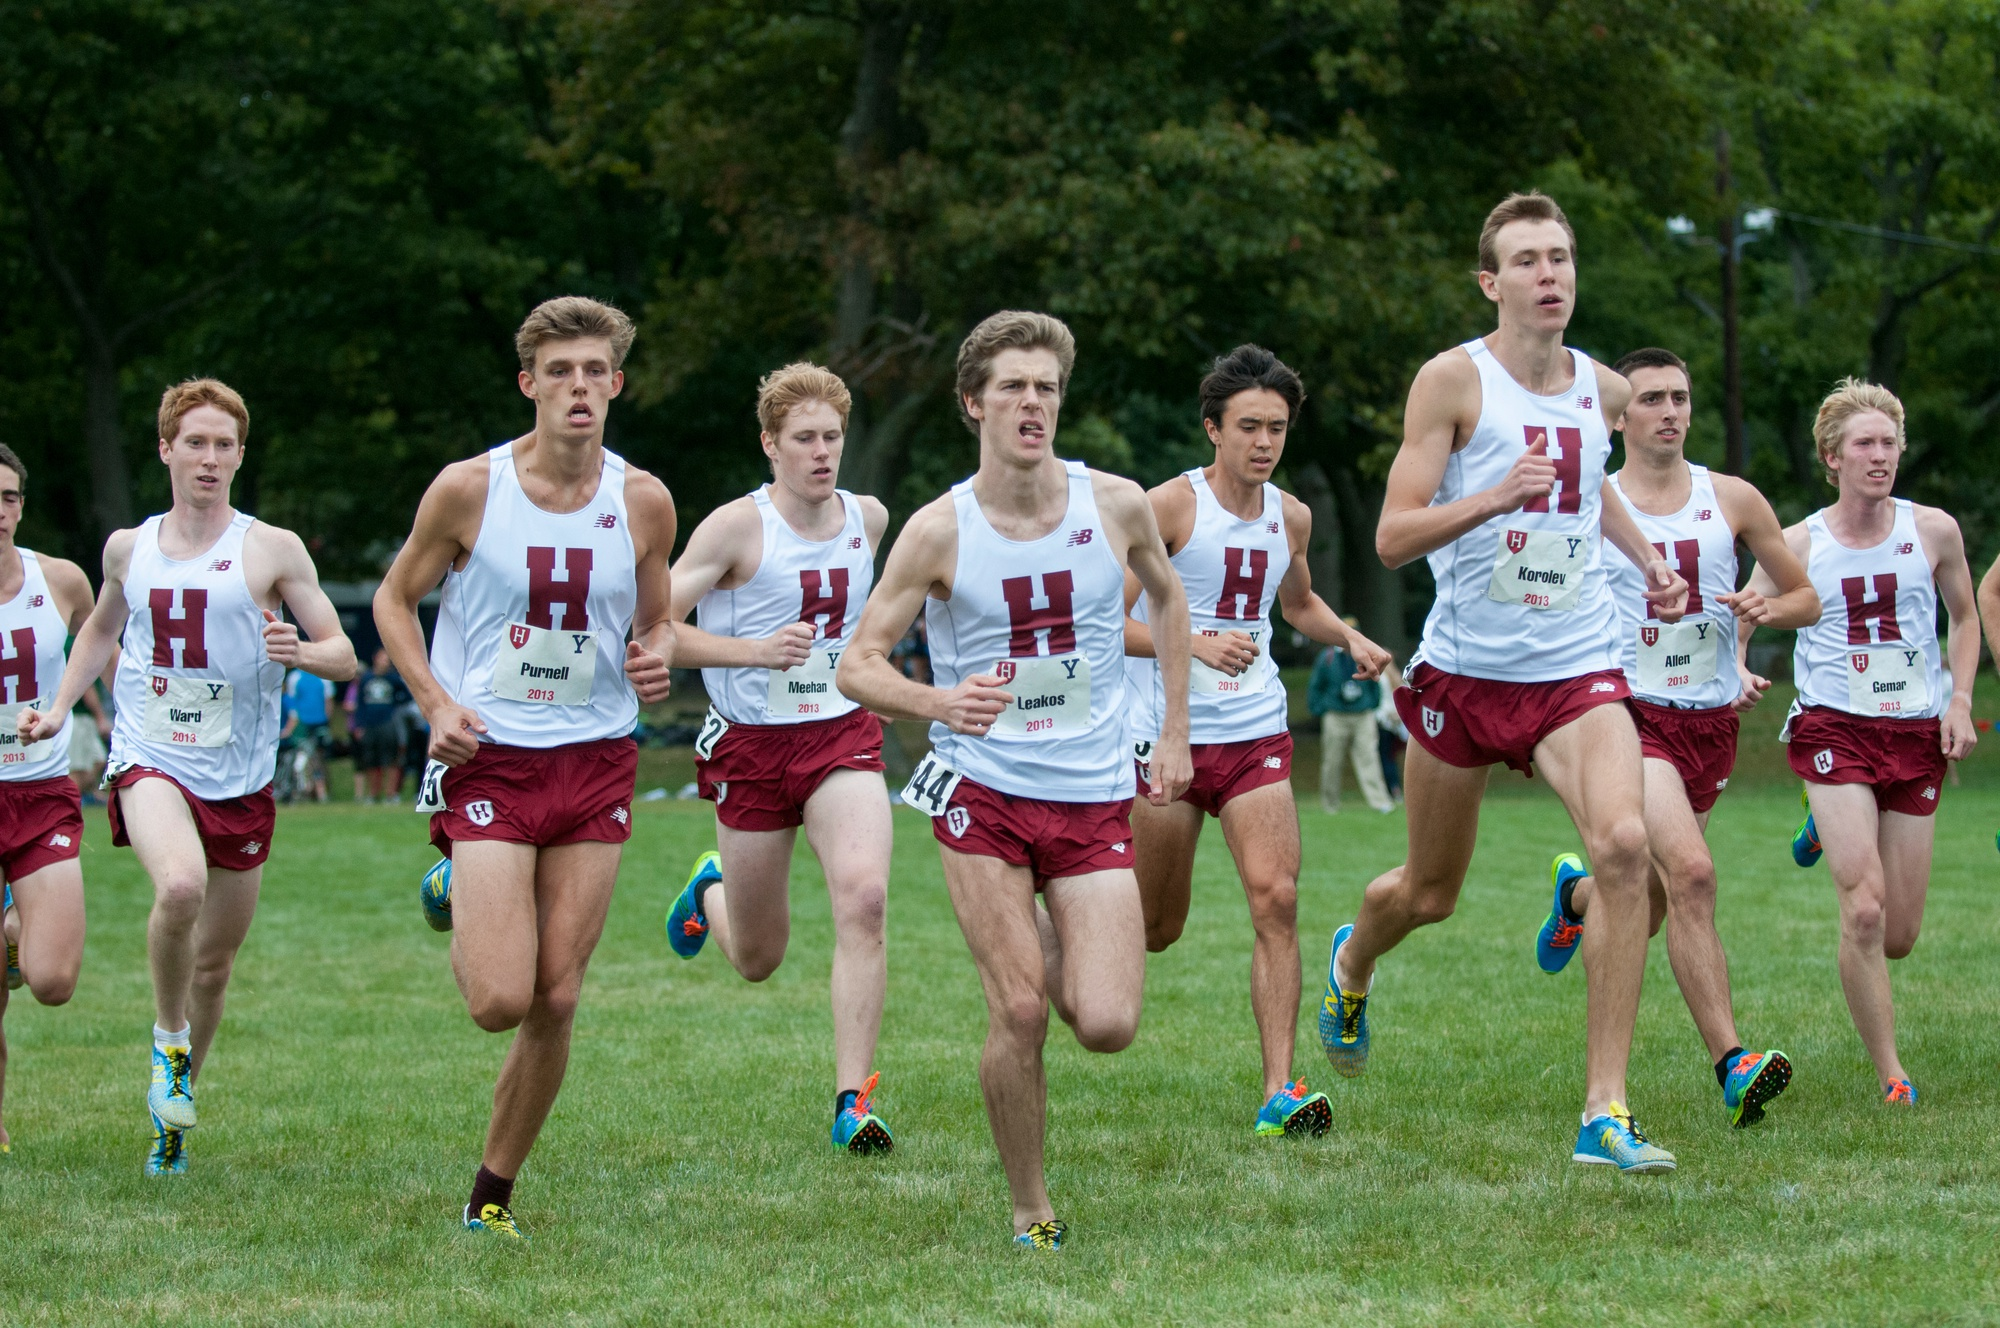 The men's and women's cross country teams competed at the 2014 Ivy League Heptagonal Championships this past weekend, placing fifth and seventh, respectively.